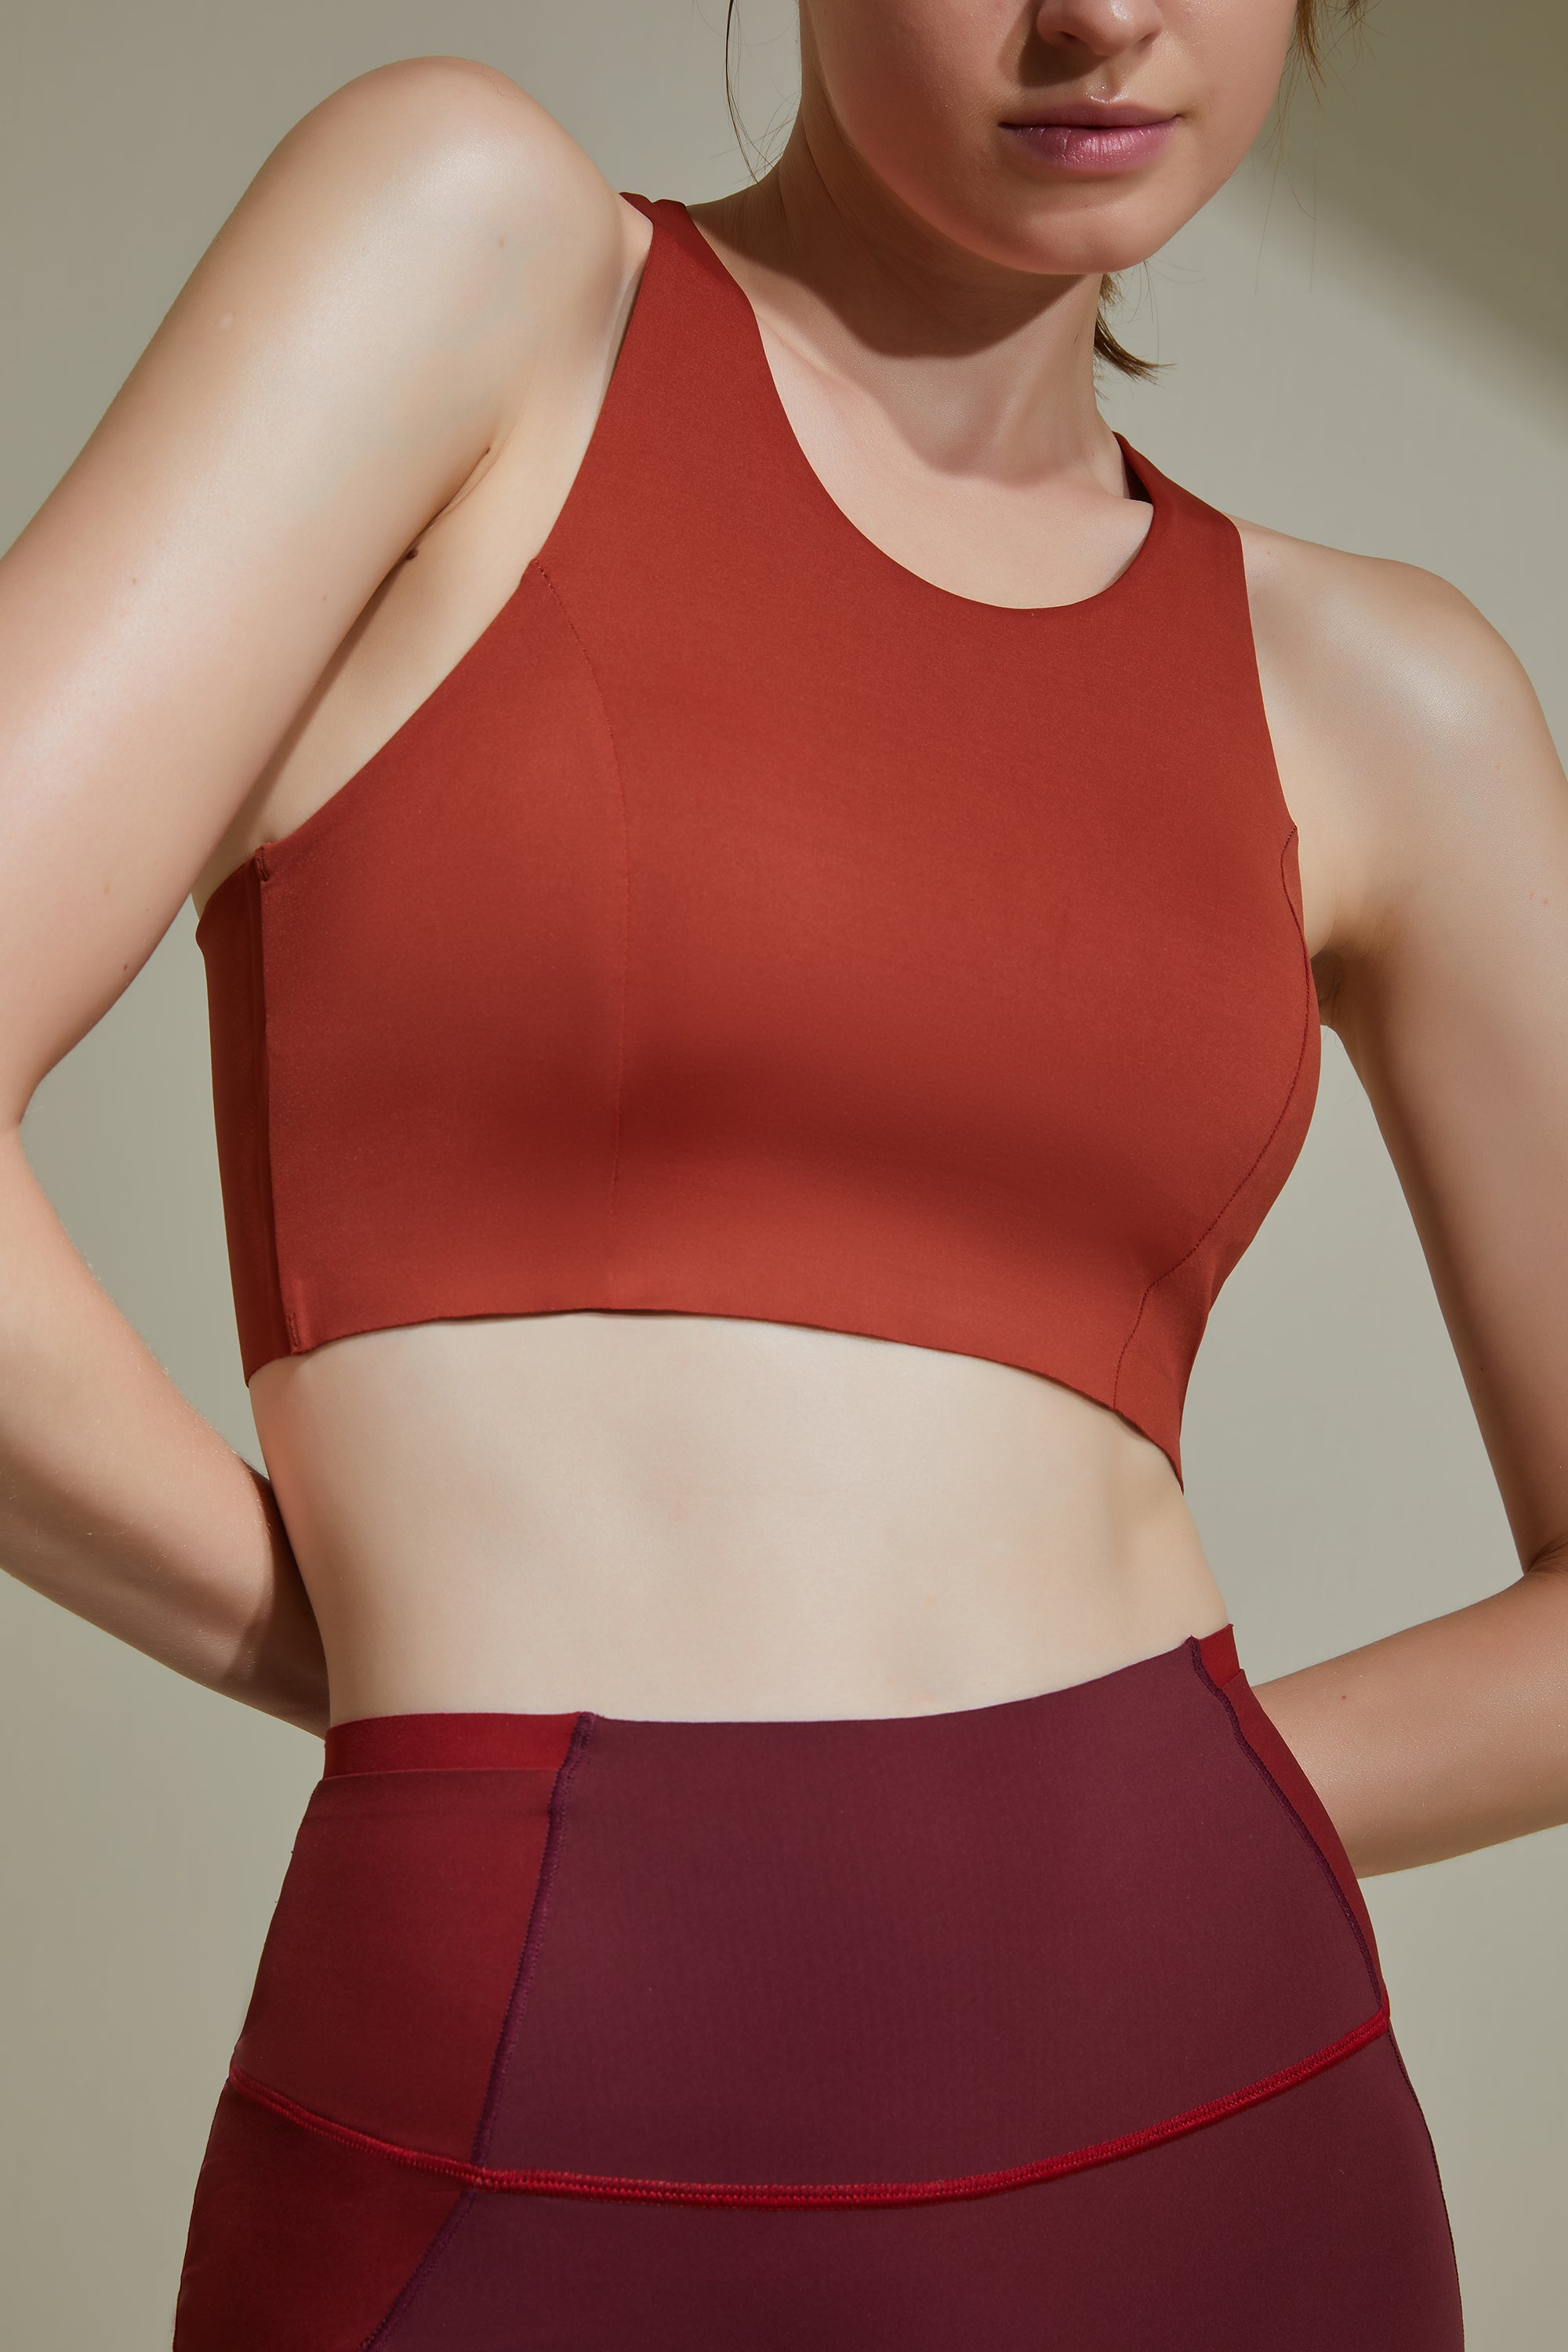 NEIWAI ACTIVE Cross Back Sports Bra in Orange Rust. Moderate Coverage